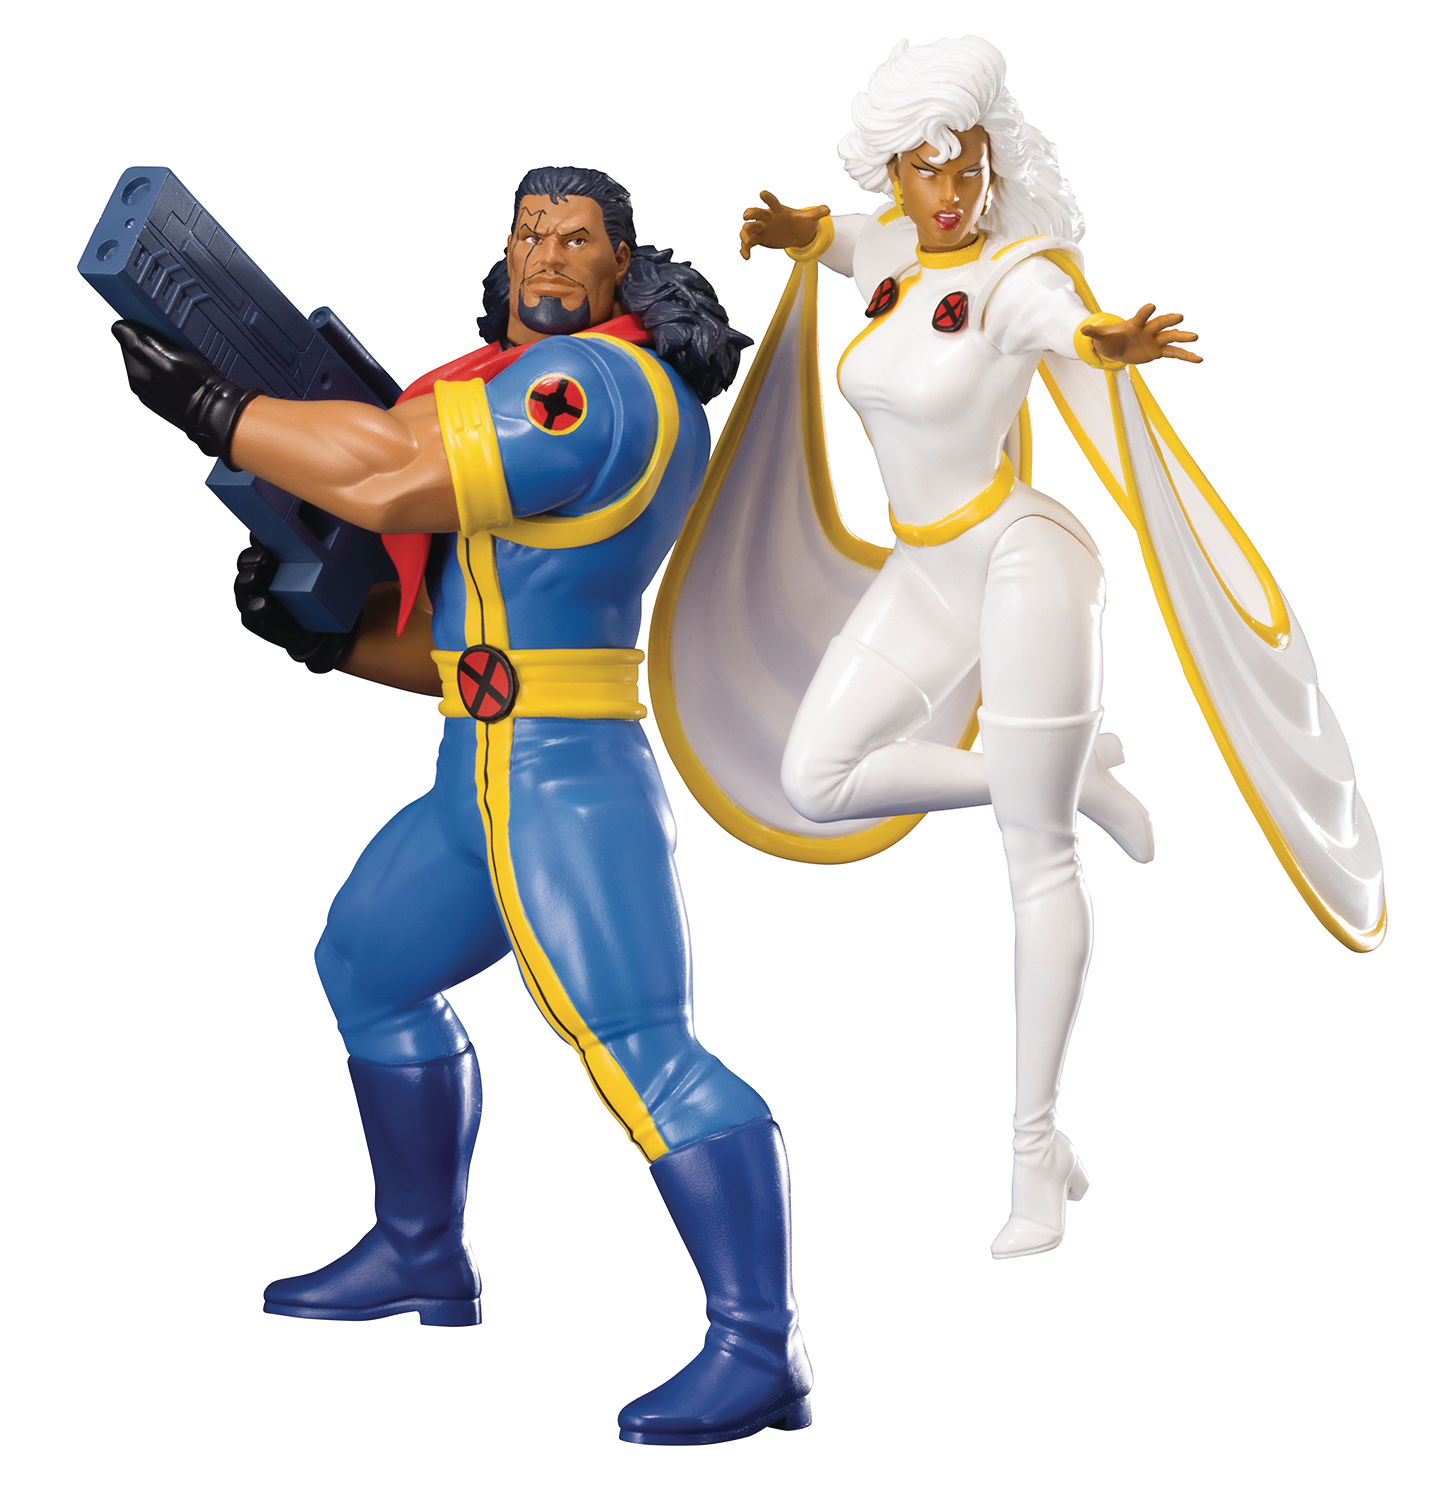 MARVEL UNIVERSE X-MEN 92 BISHOP & STORM 2PK ARTFX+ STATUE (C